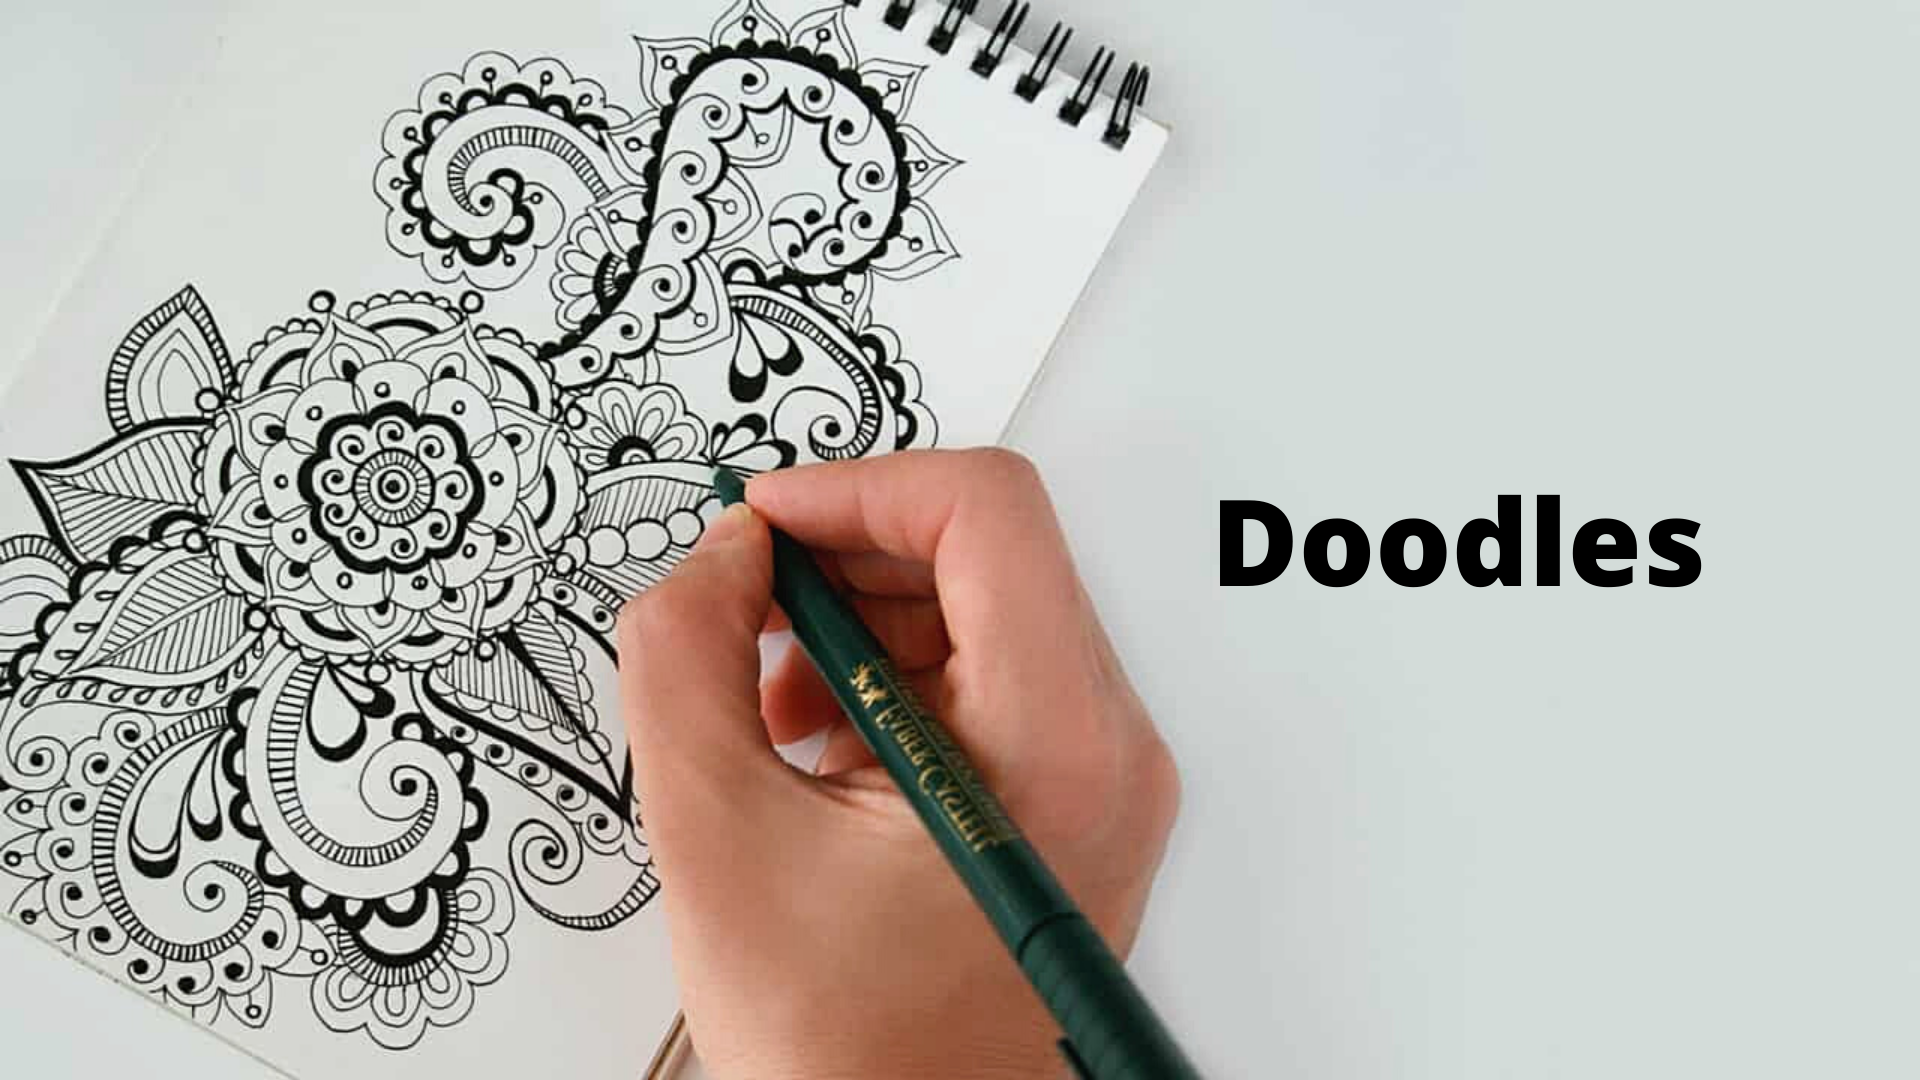 What are Doodles?